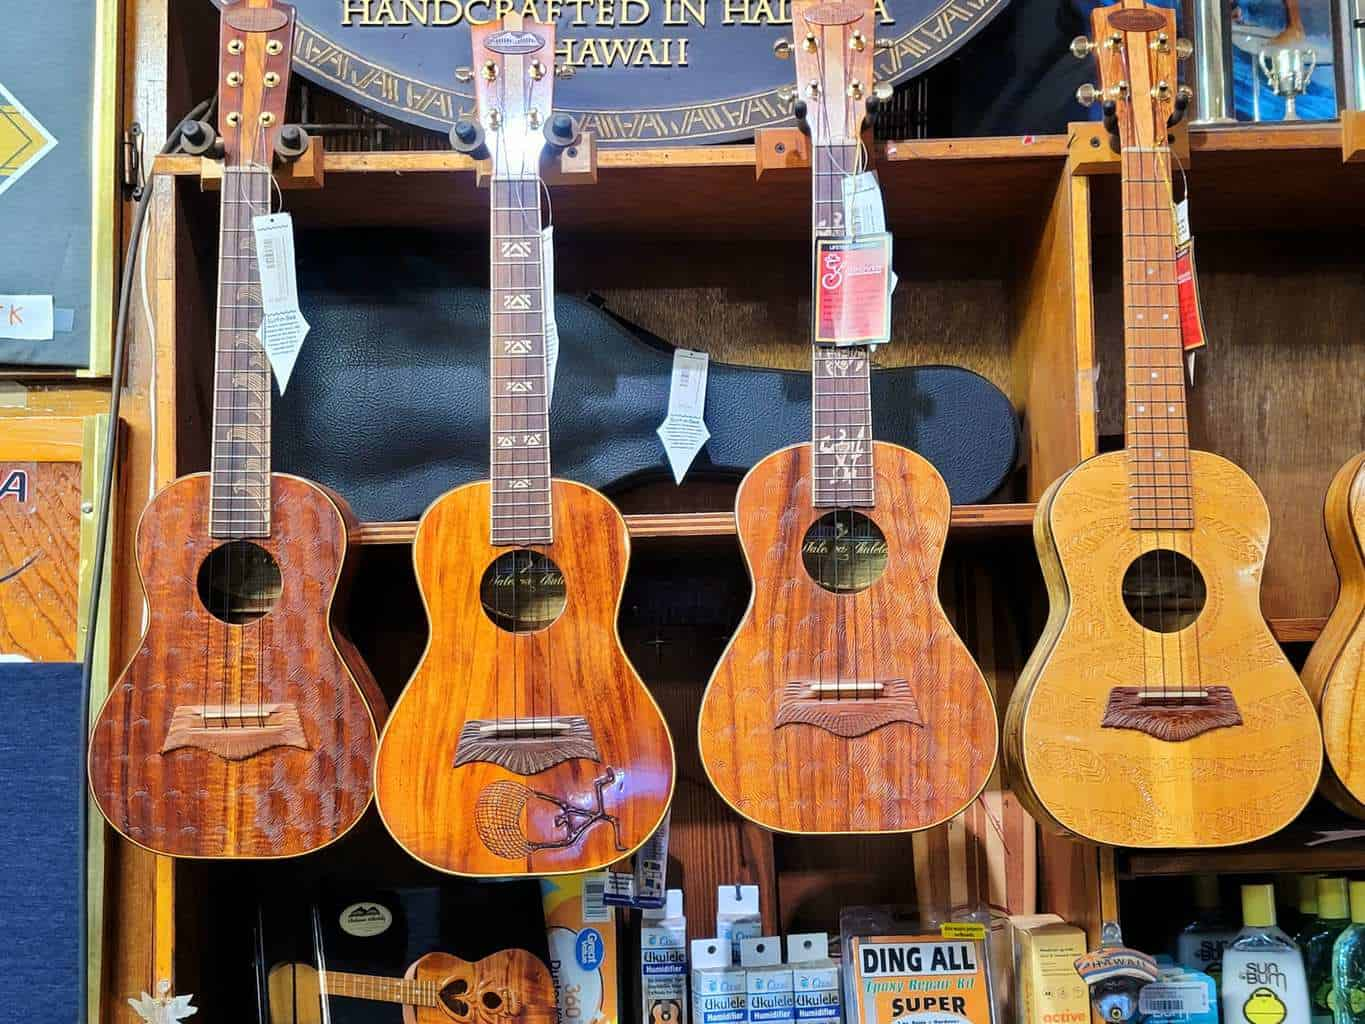 Owner's handcrafted Ukuleles available for purchase!